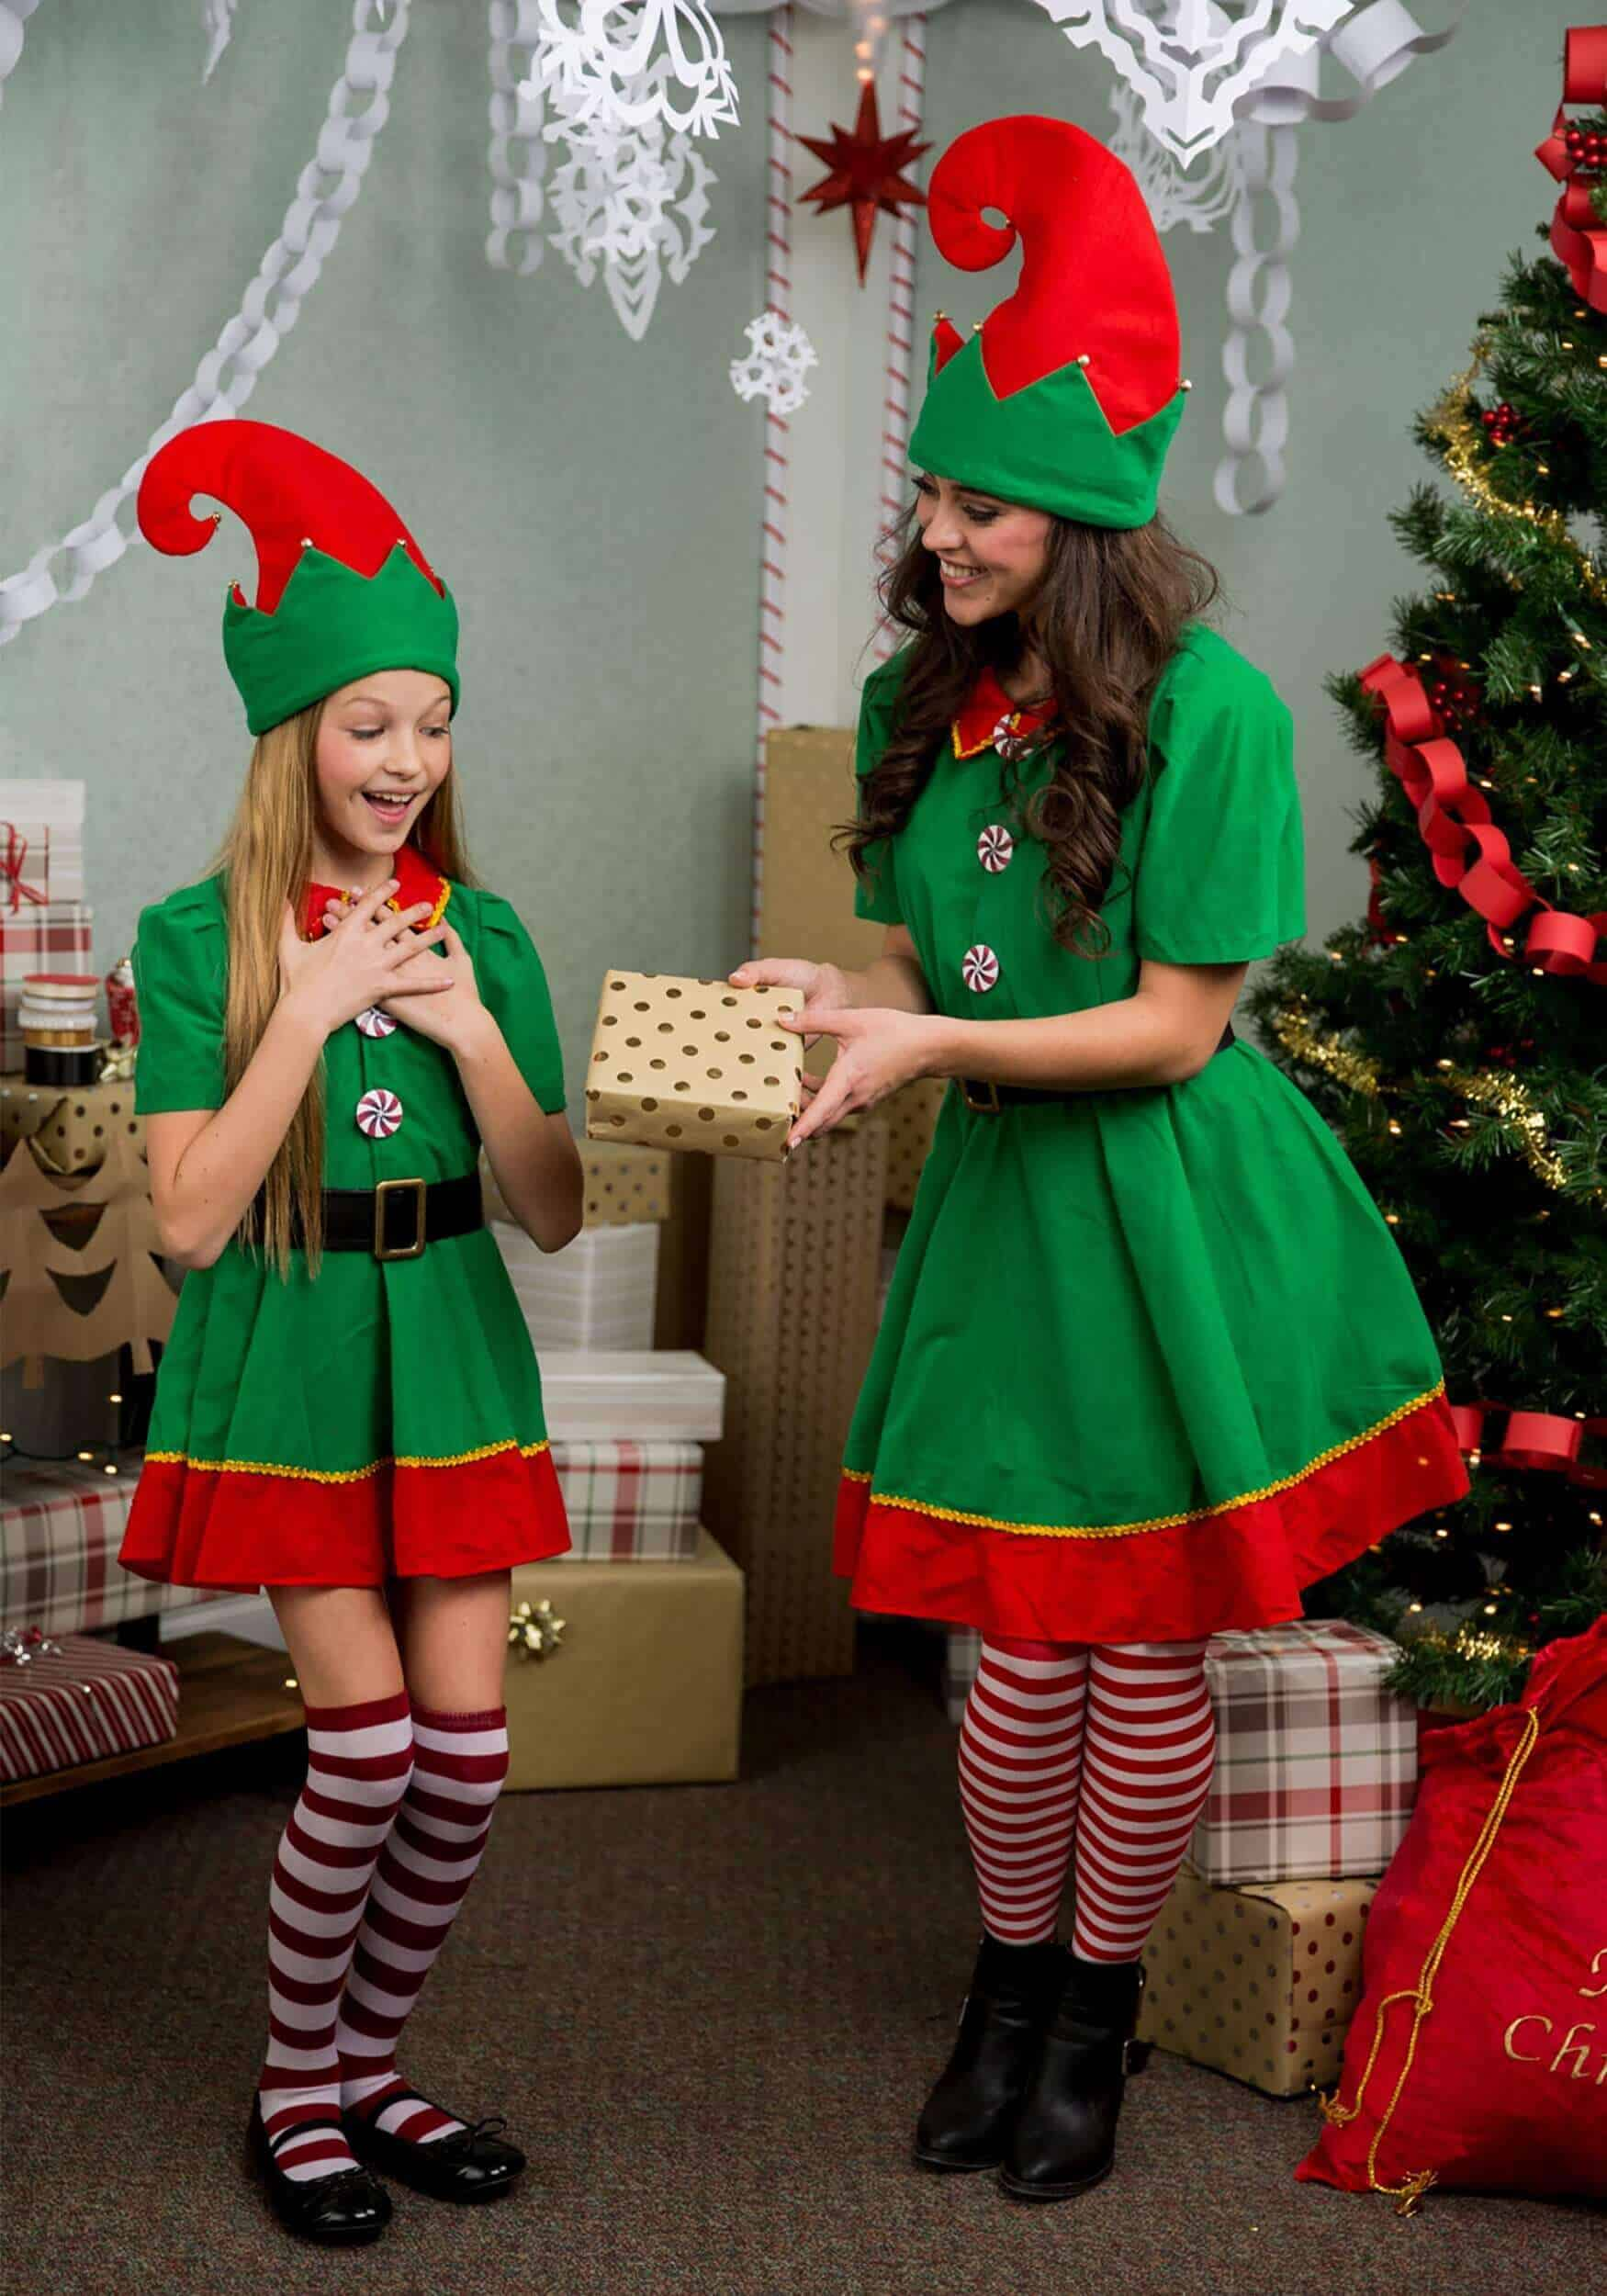 Costume Design Ideas for Christmas Party